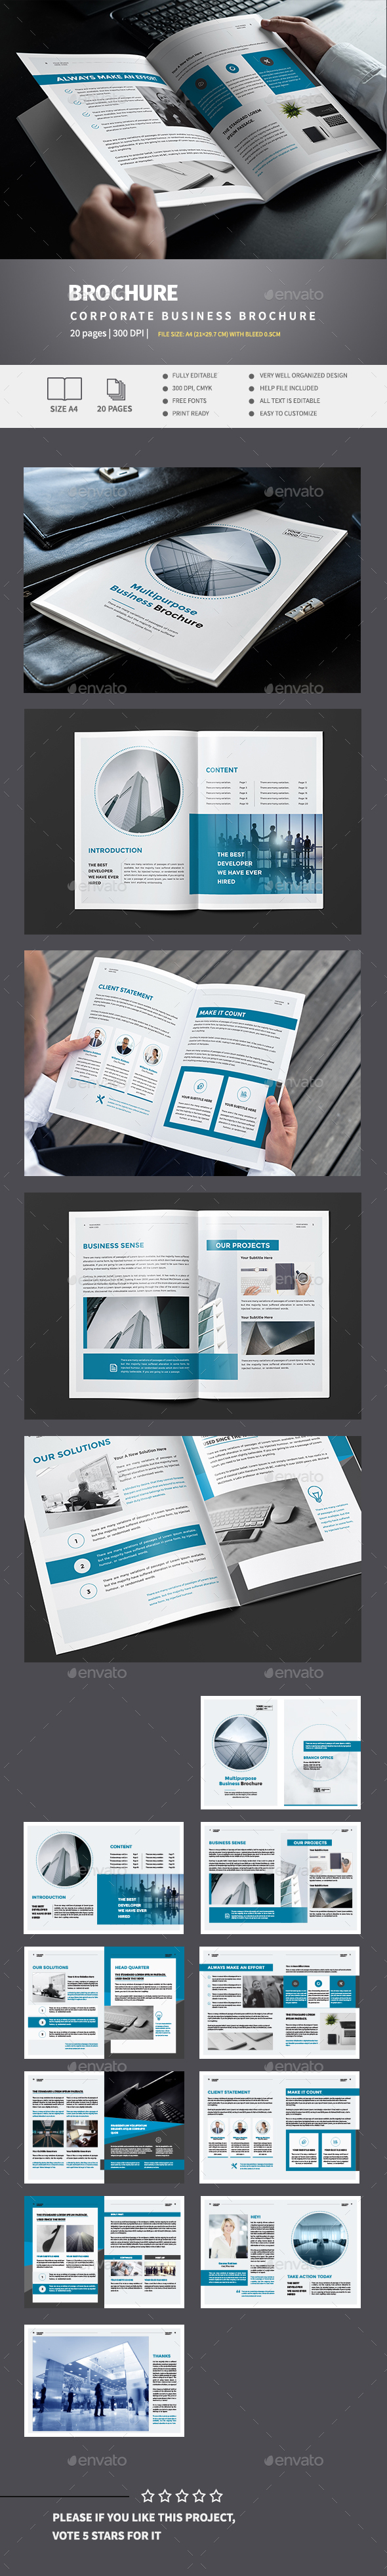 Blue Business Brochure Template - Corporate Brochures